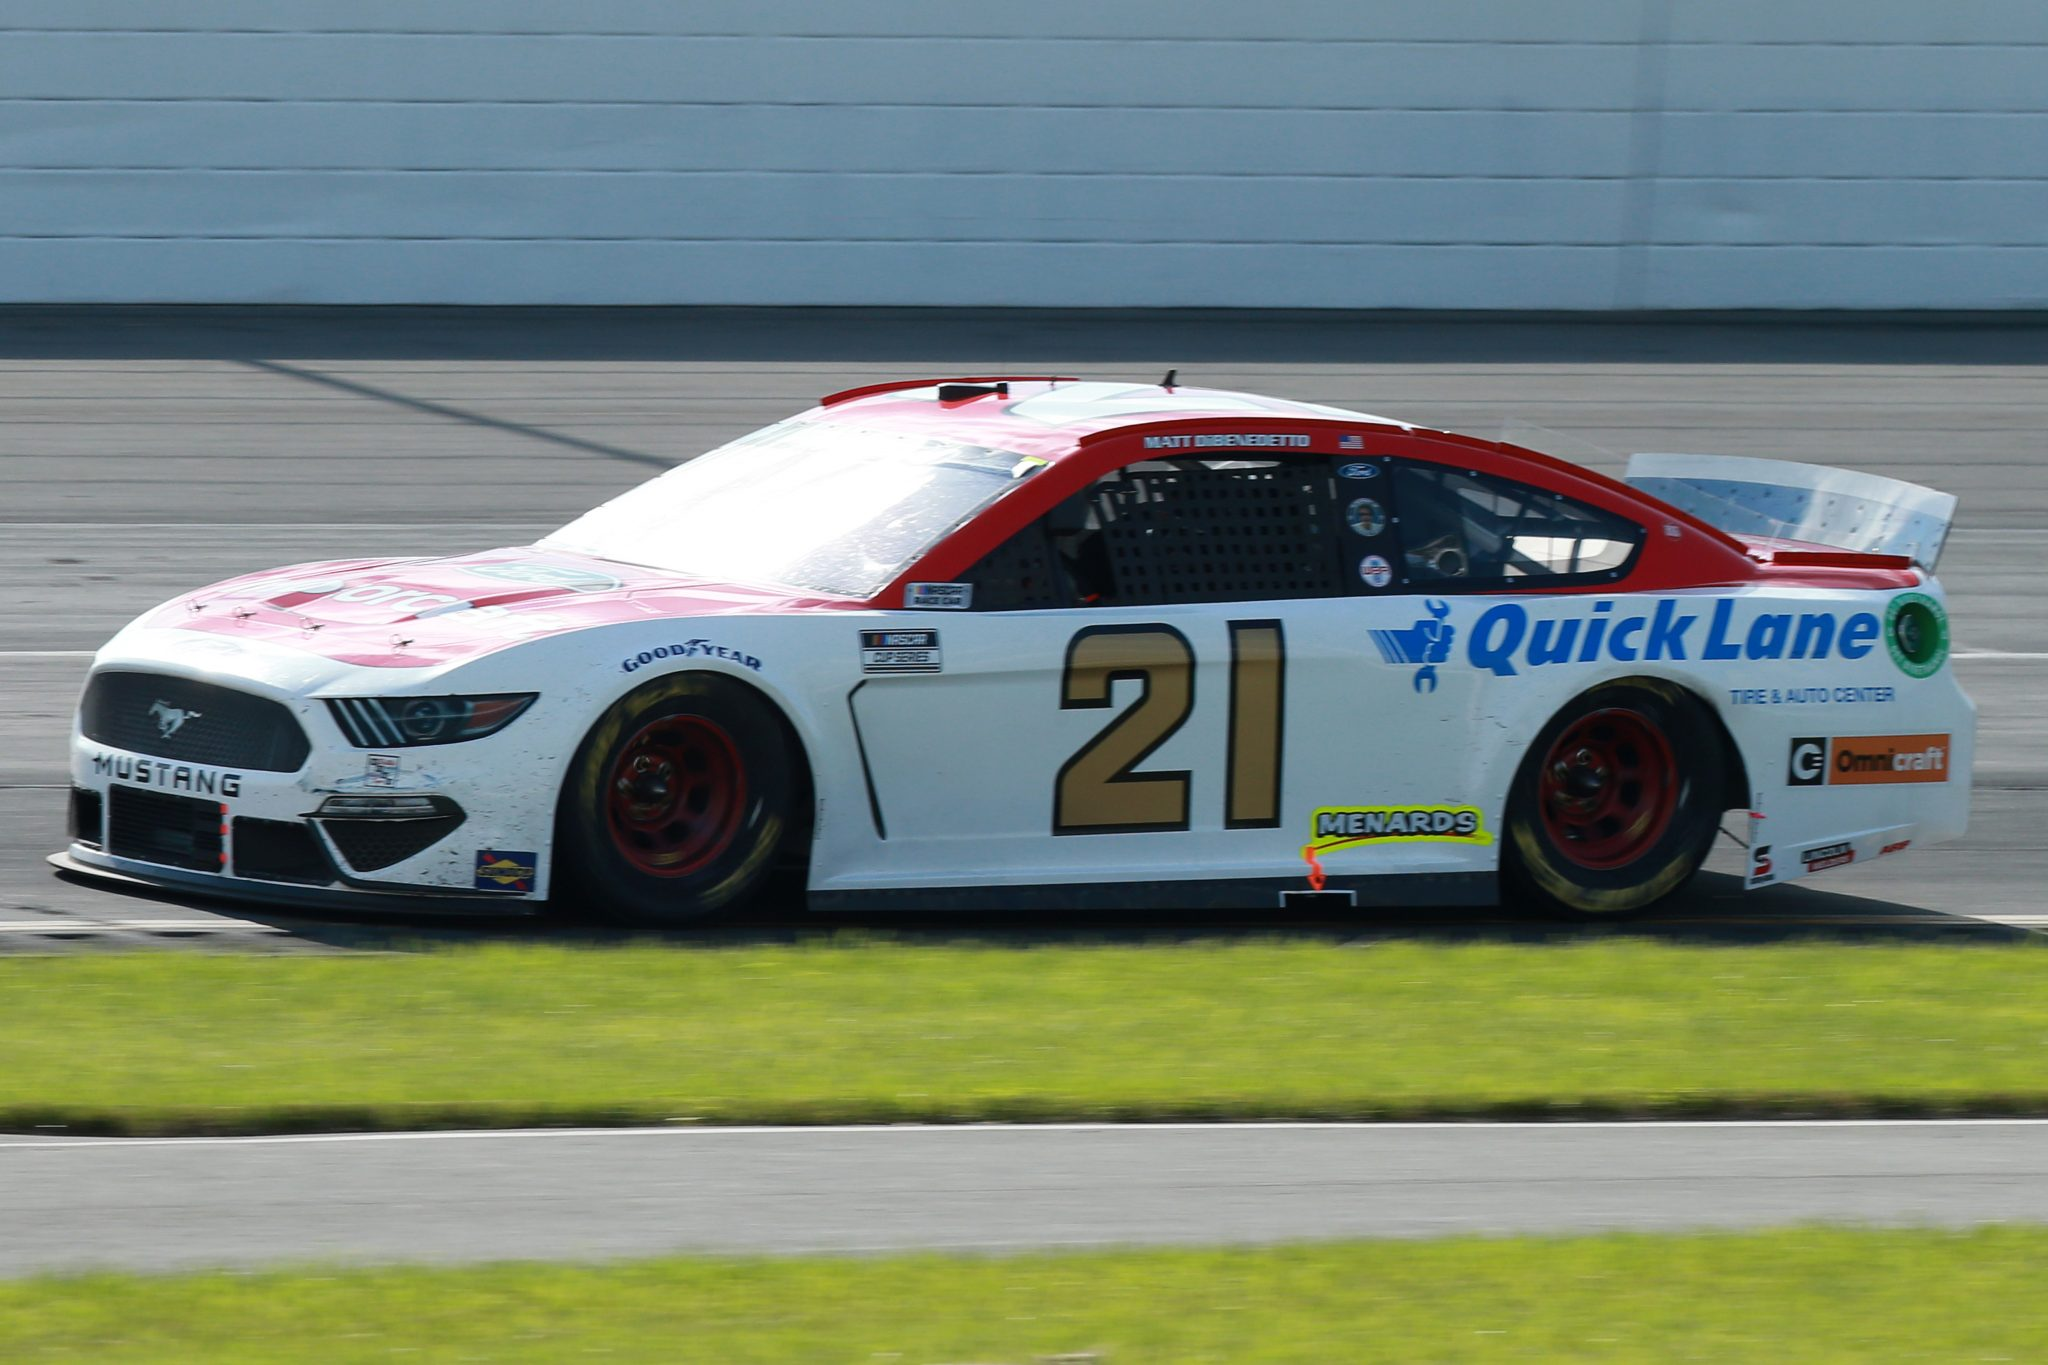 LONG POND, PENNSYLVANIA - JUNE 27: Matt DiBenedetto, driver of the #21 Motorcraft/Quick Lane Ford, drives during the NASCAR Cup Series Explore the Pocono Mountains 350 at Pocono Raceway on June 27, 2021 in Long Pond, Pennsylvania. (Photo by Sean Gardner/Getty Images) | Getty Images